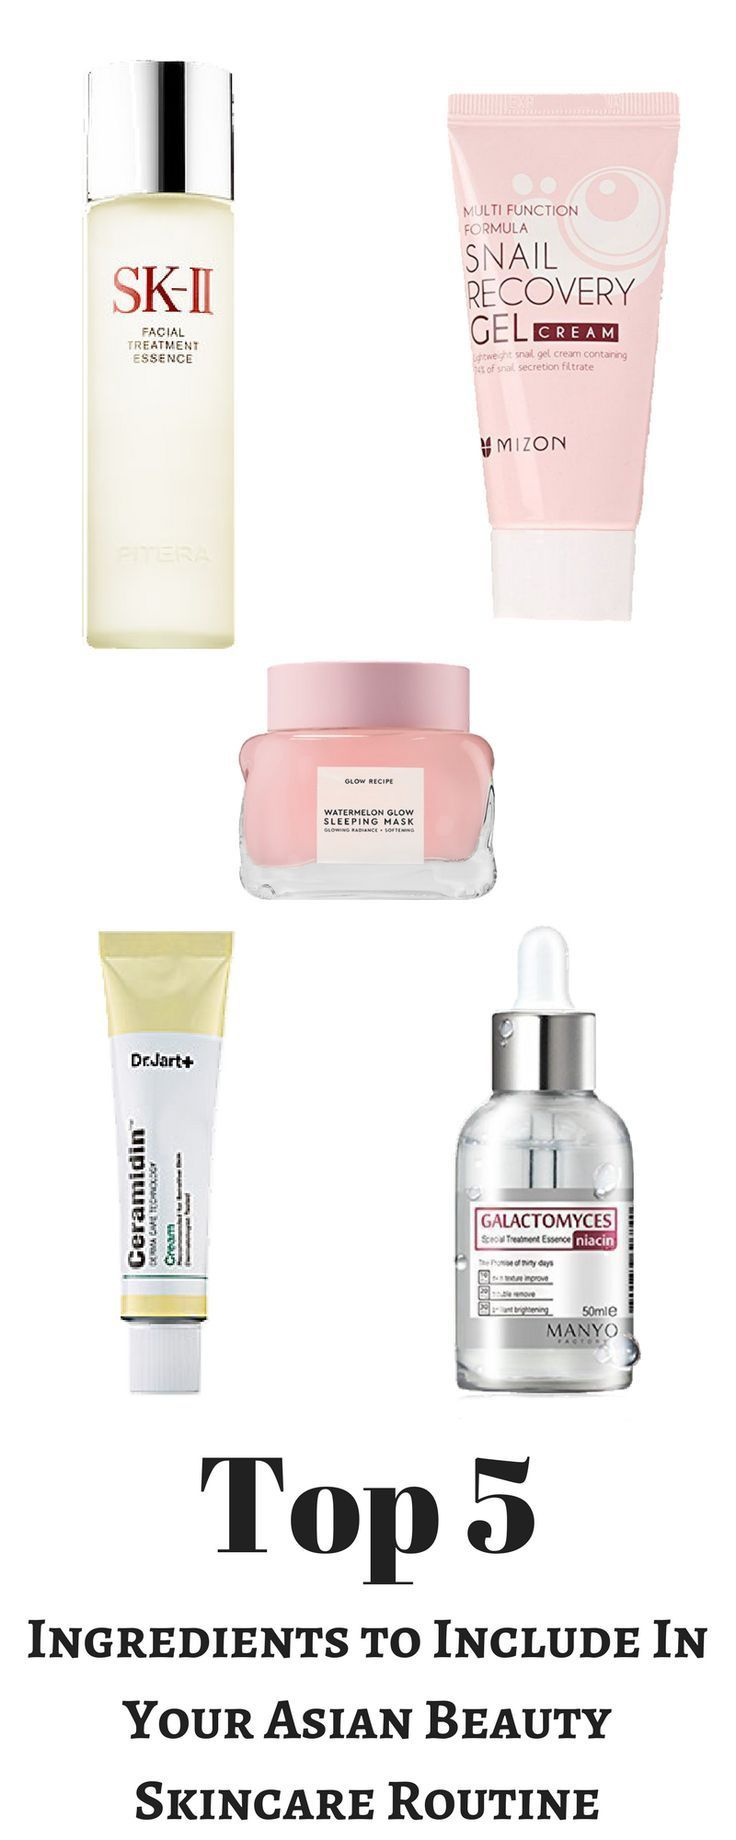 Top 5 Ingredients To Include In Your Asian Beauty Skincare Routine Kbeauty Skincare Skincareproducts Skin Care Routine Beauty Skin Care Simple Skincare